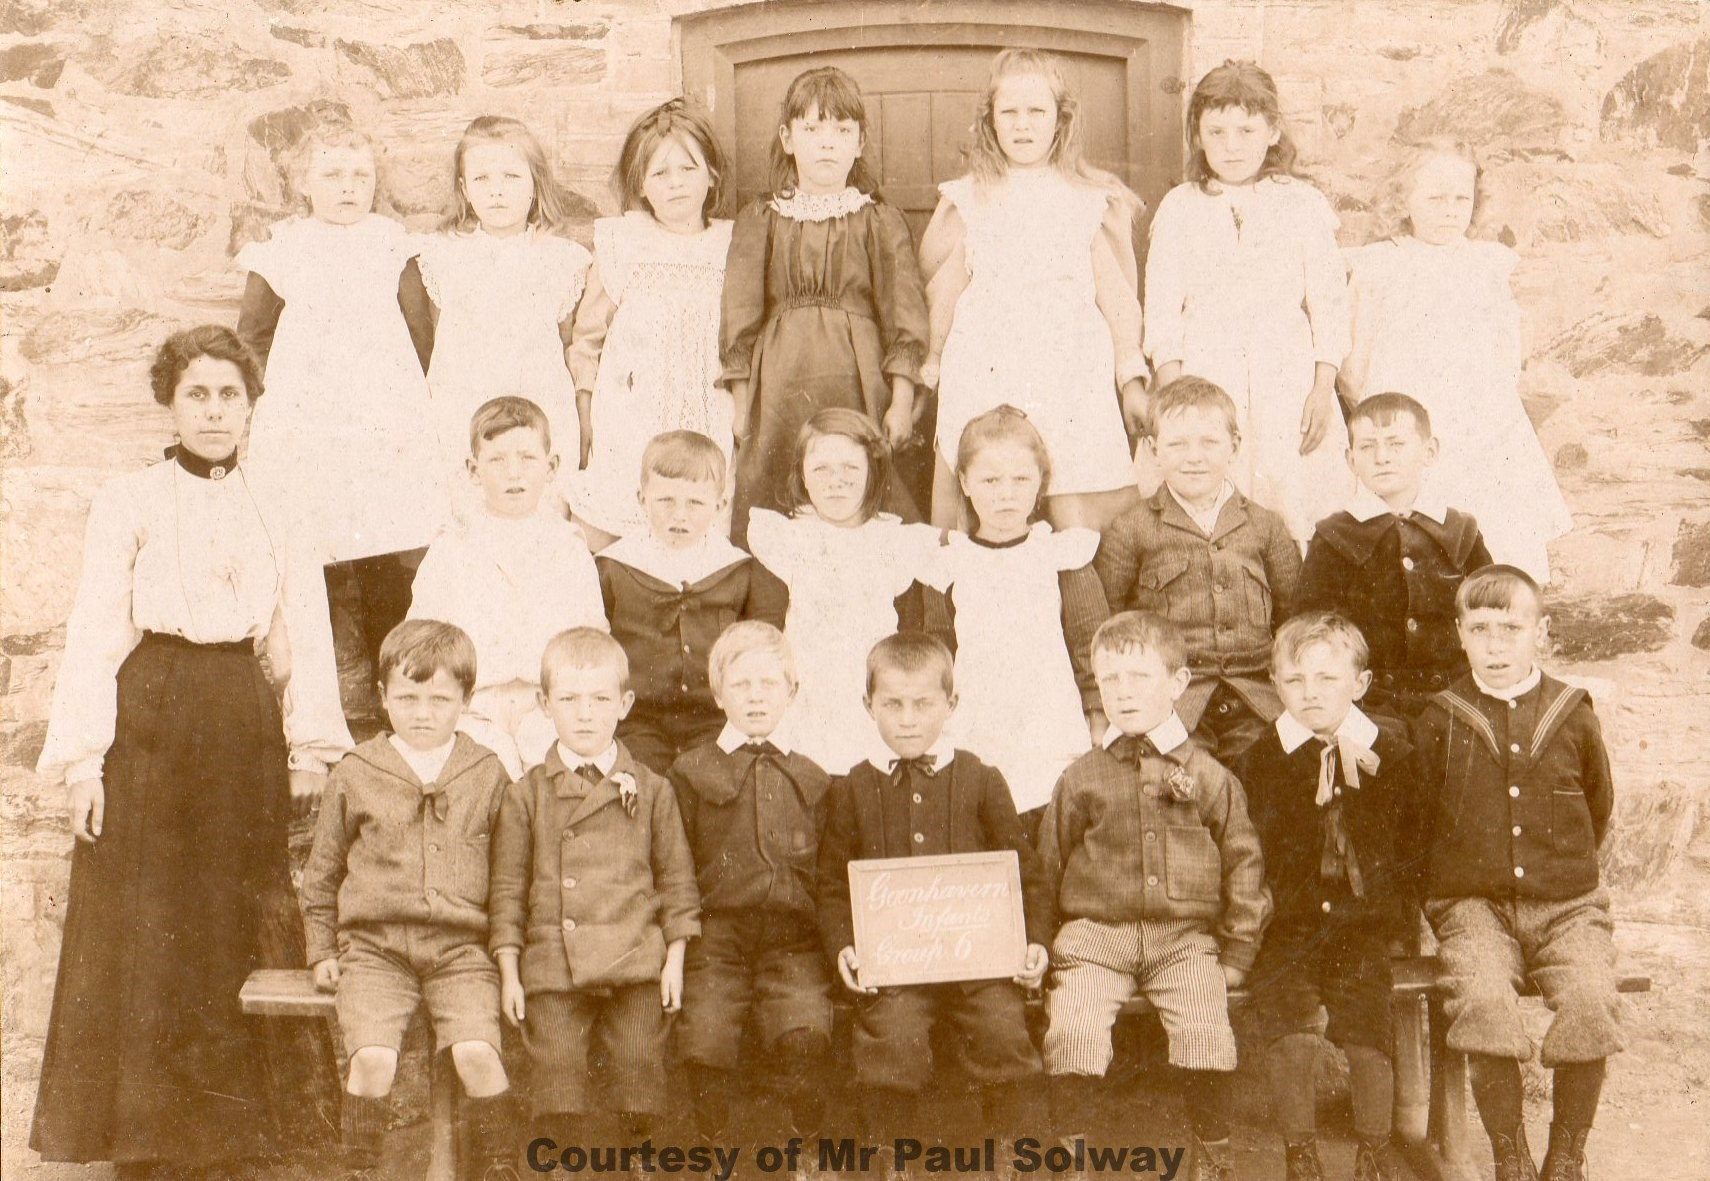 Goonhavern School Classes - Circa 1891-1901